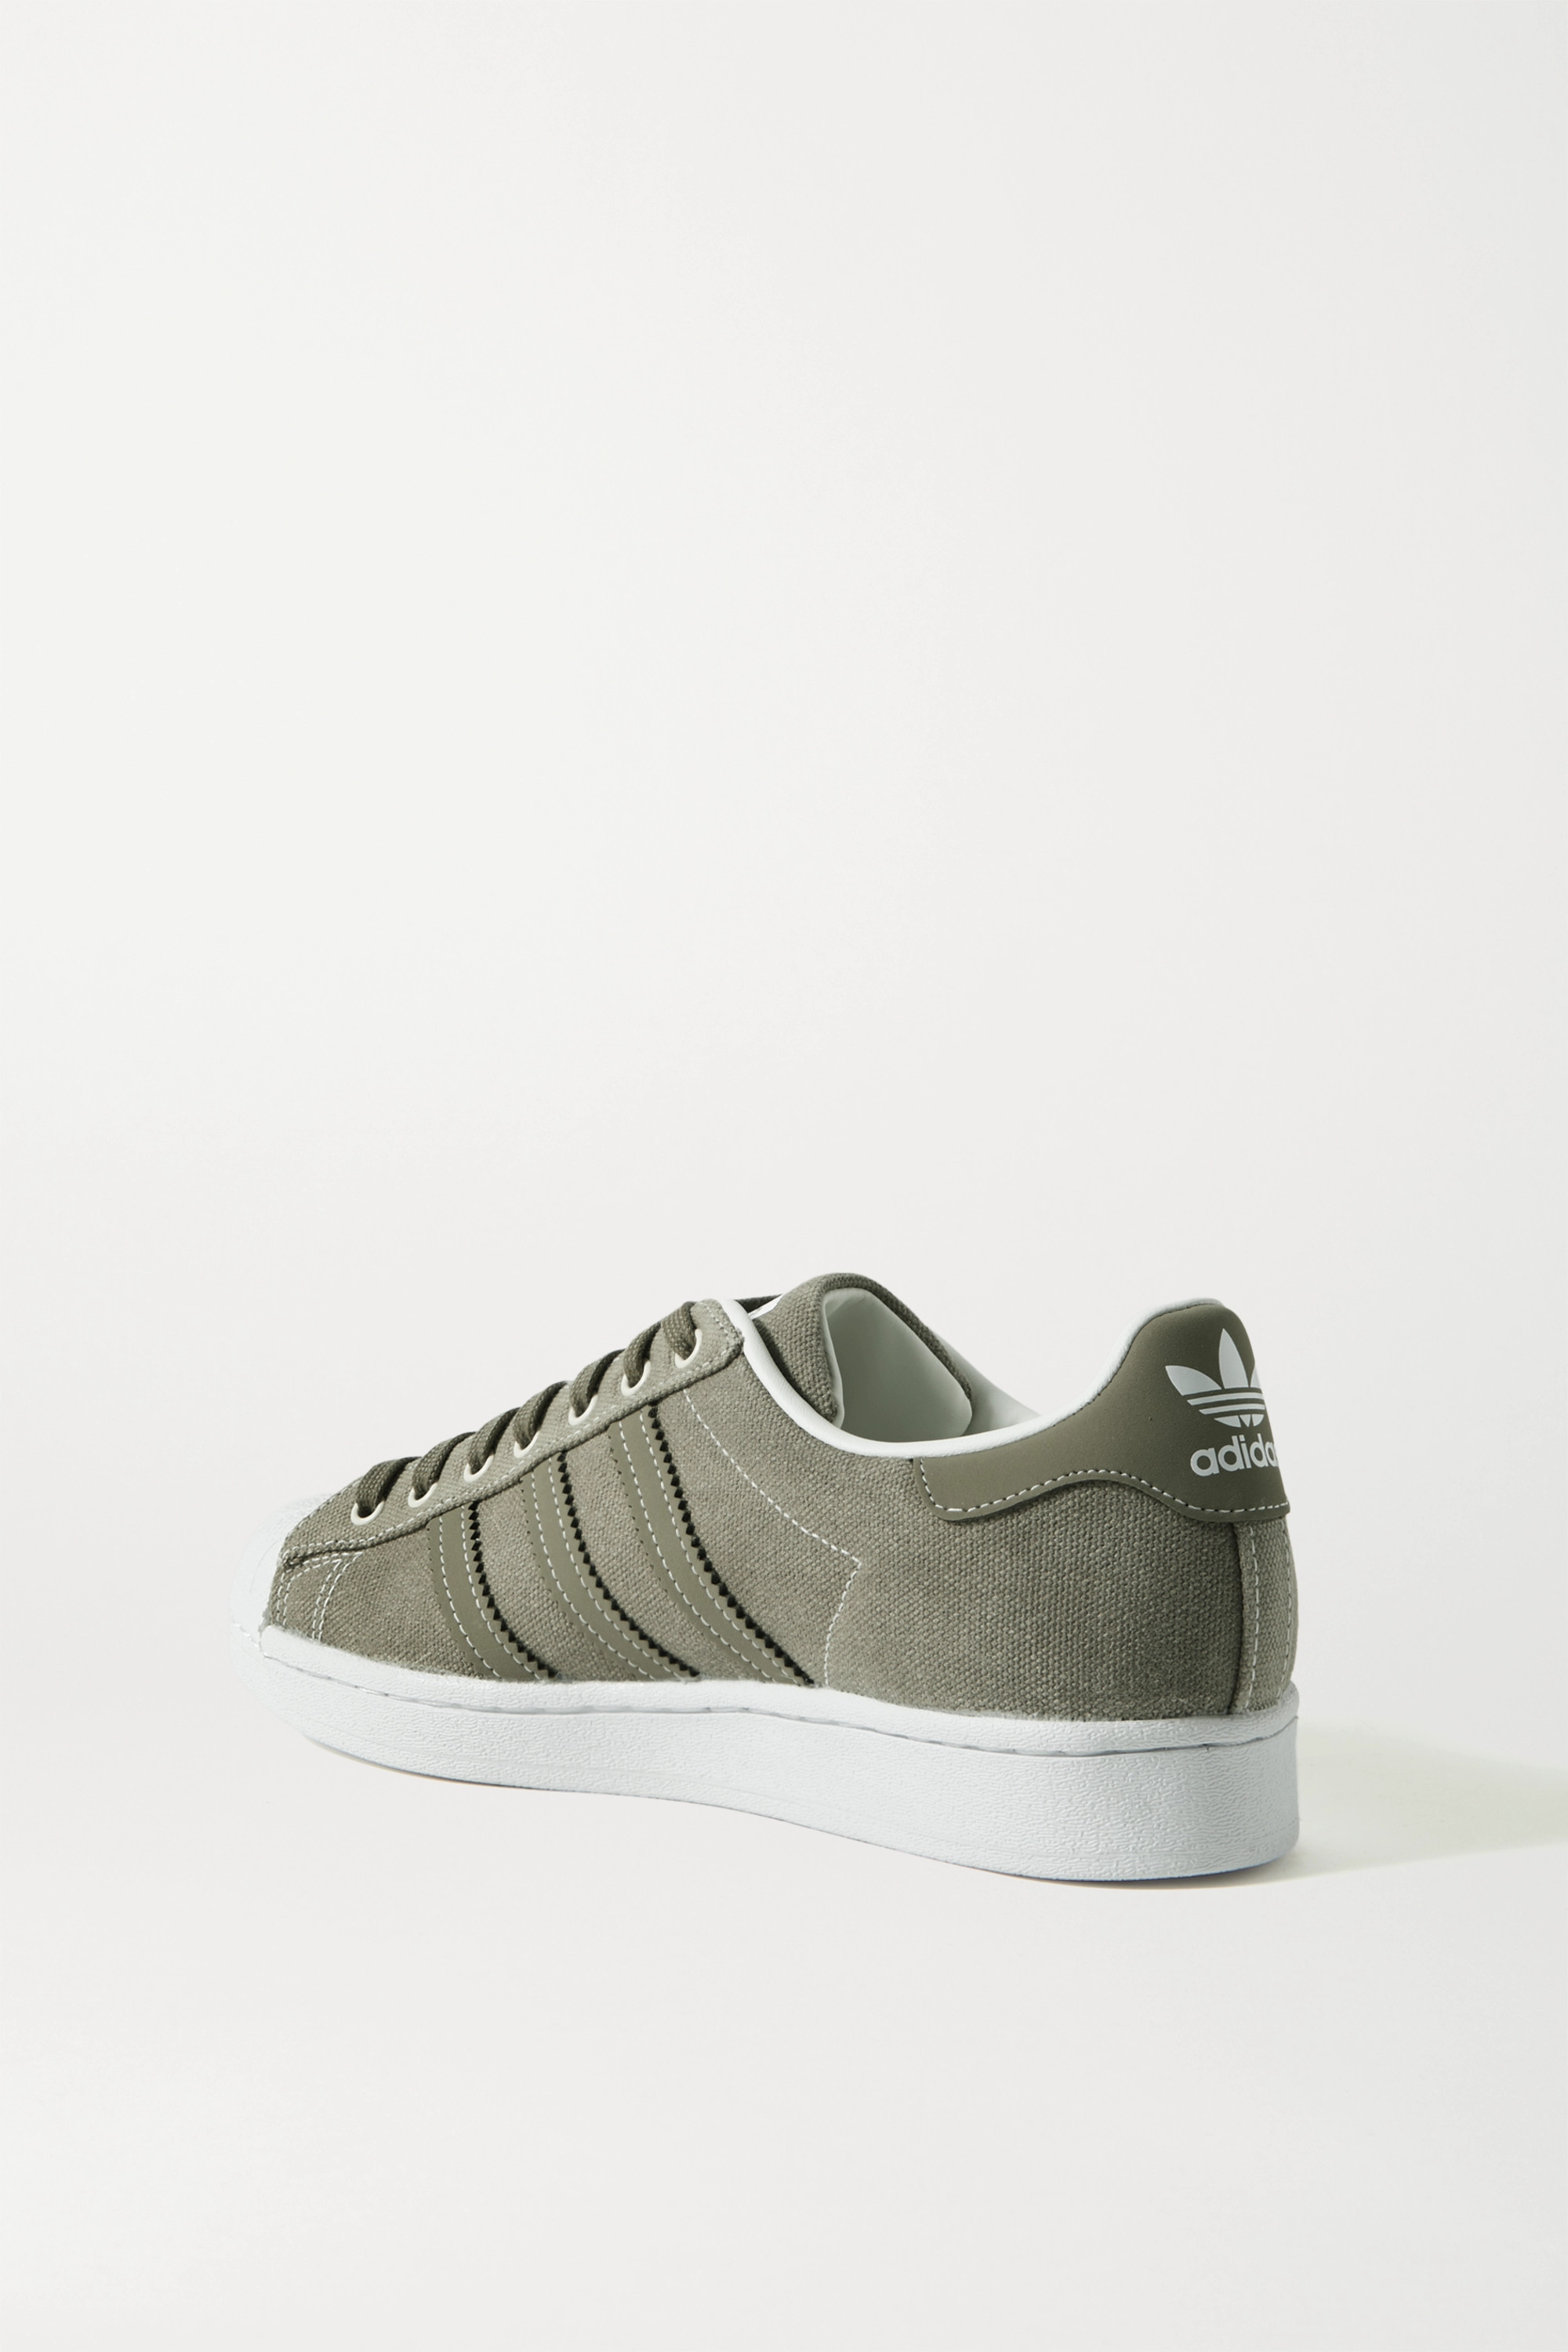 adidas Originals Superstar rubber-trimmed canvas sneakers